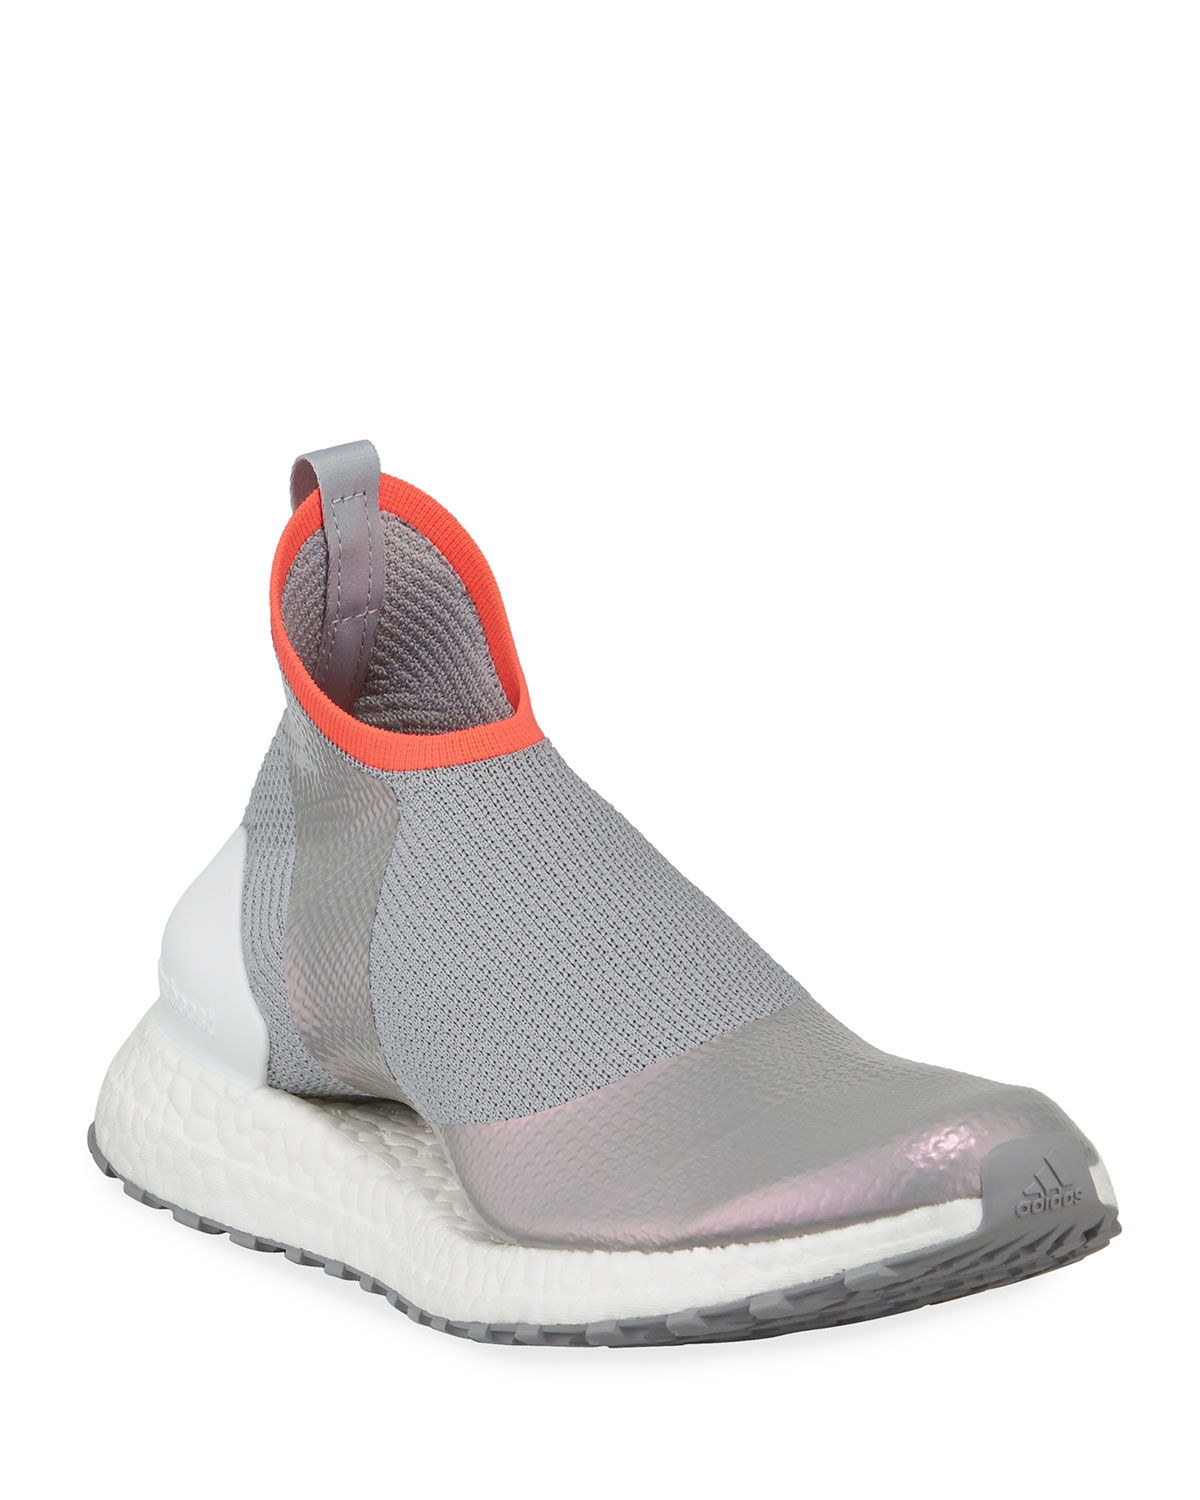 092bbdeff adidas by Stella McCartney Ultra Boost X Fabric Sneakers